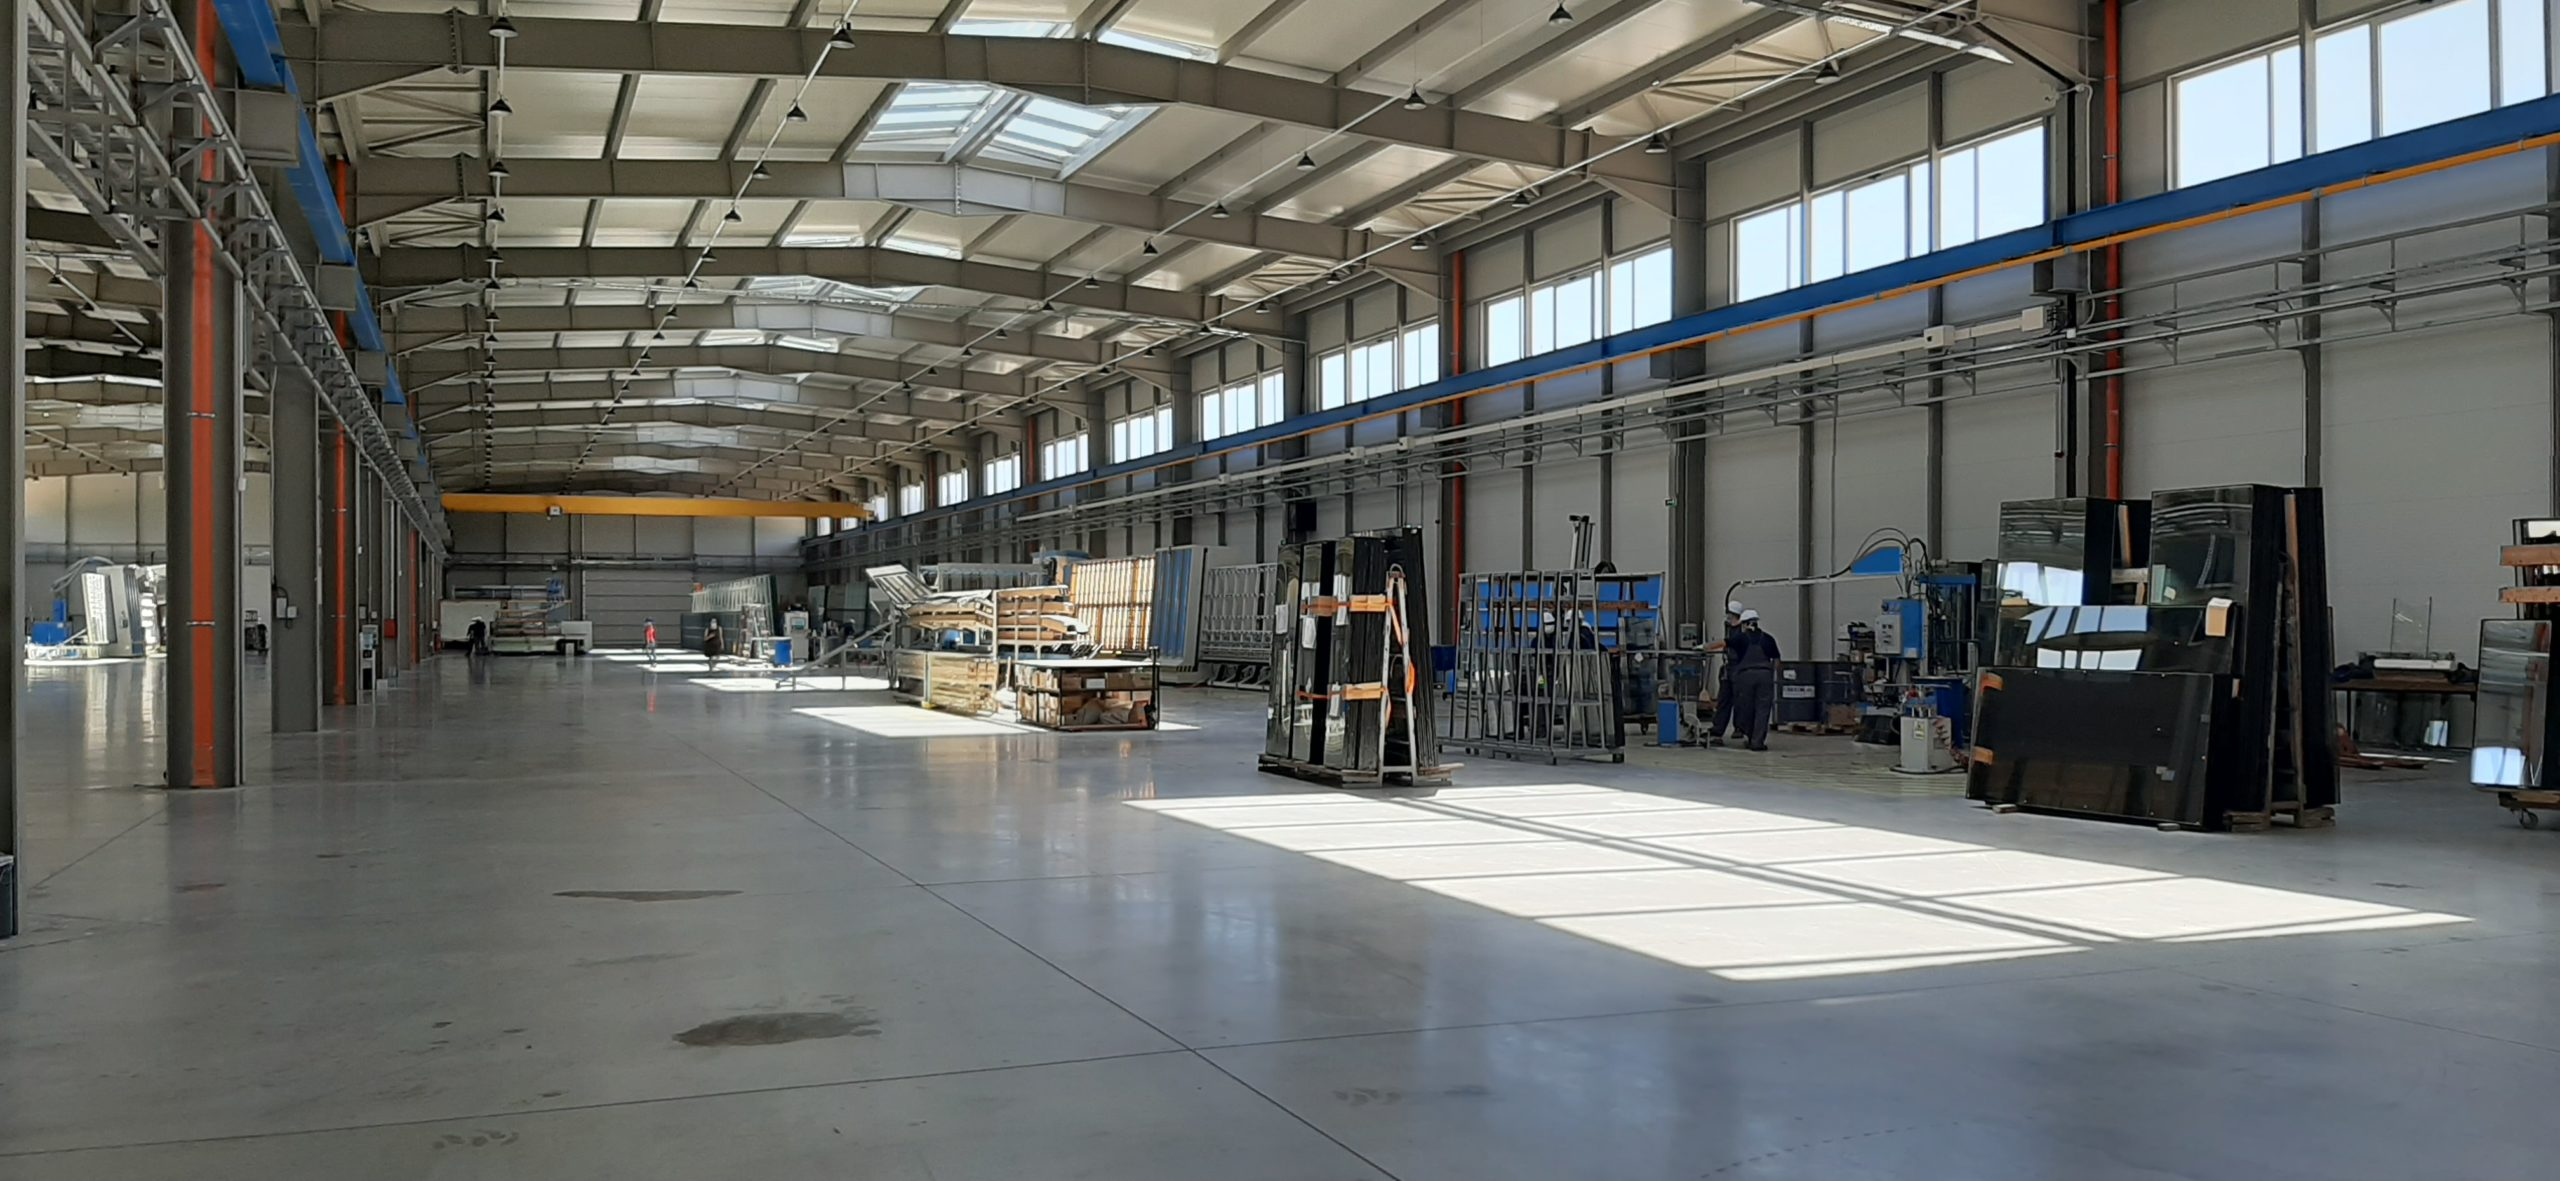 New glass plant opens in Tetovo zone – МИА